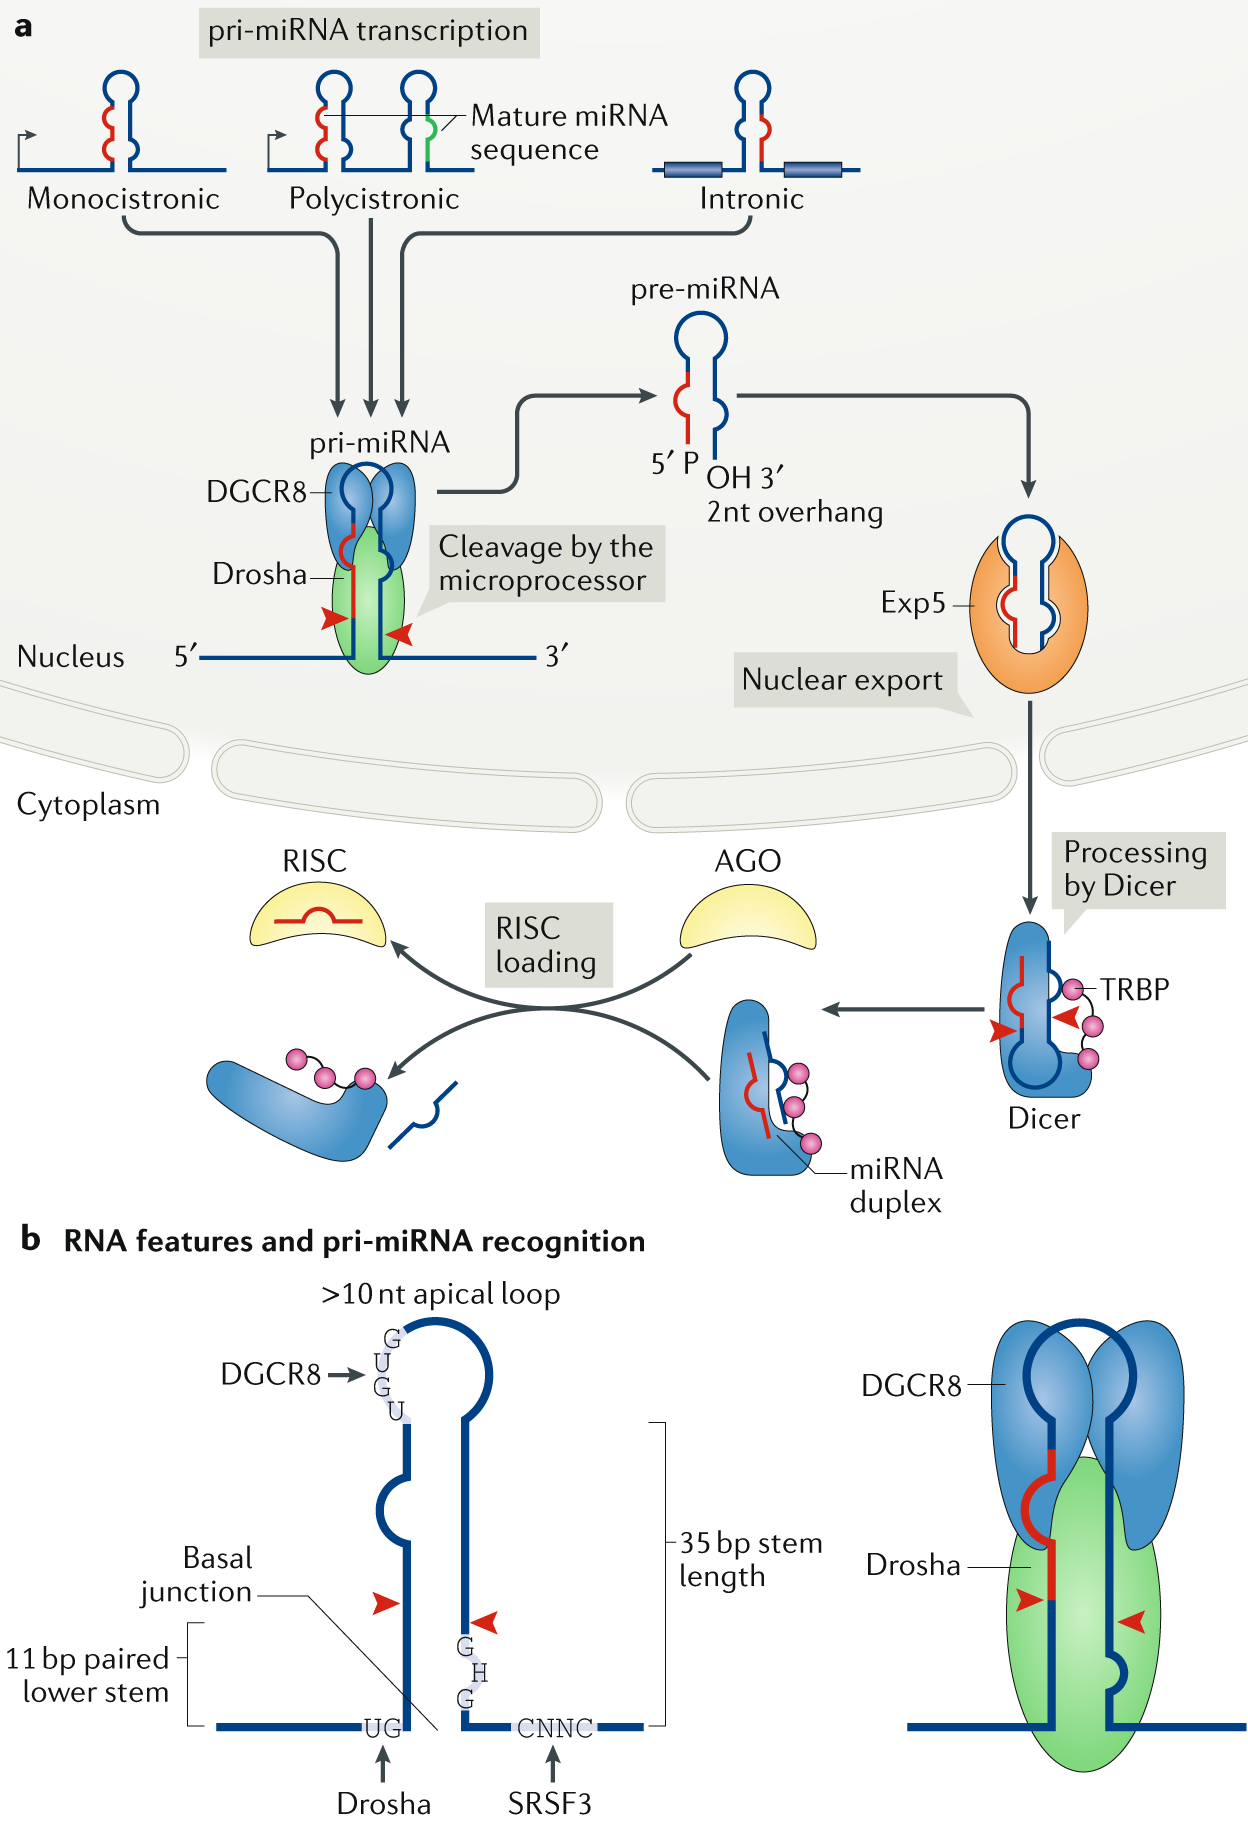 Amplitude Modulator With Ota Simple Circuit Diagram Regulation Of Microrna Biogenesis And Its Crosstalk Other Cellular Pathways Nature Reviews Molecular Cell Biology